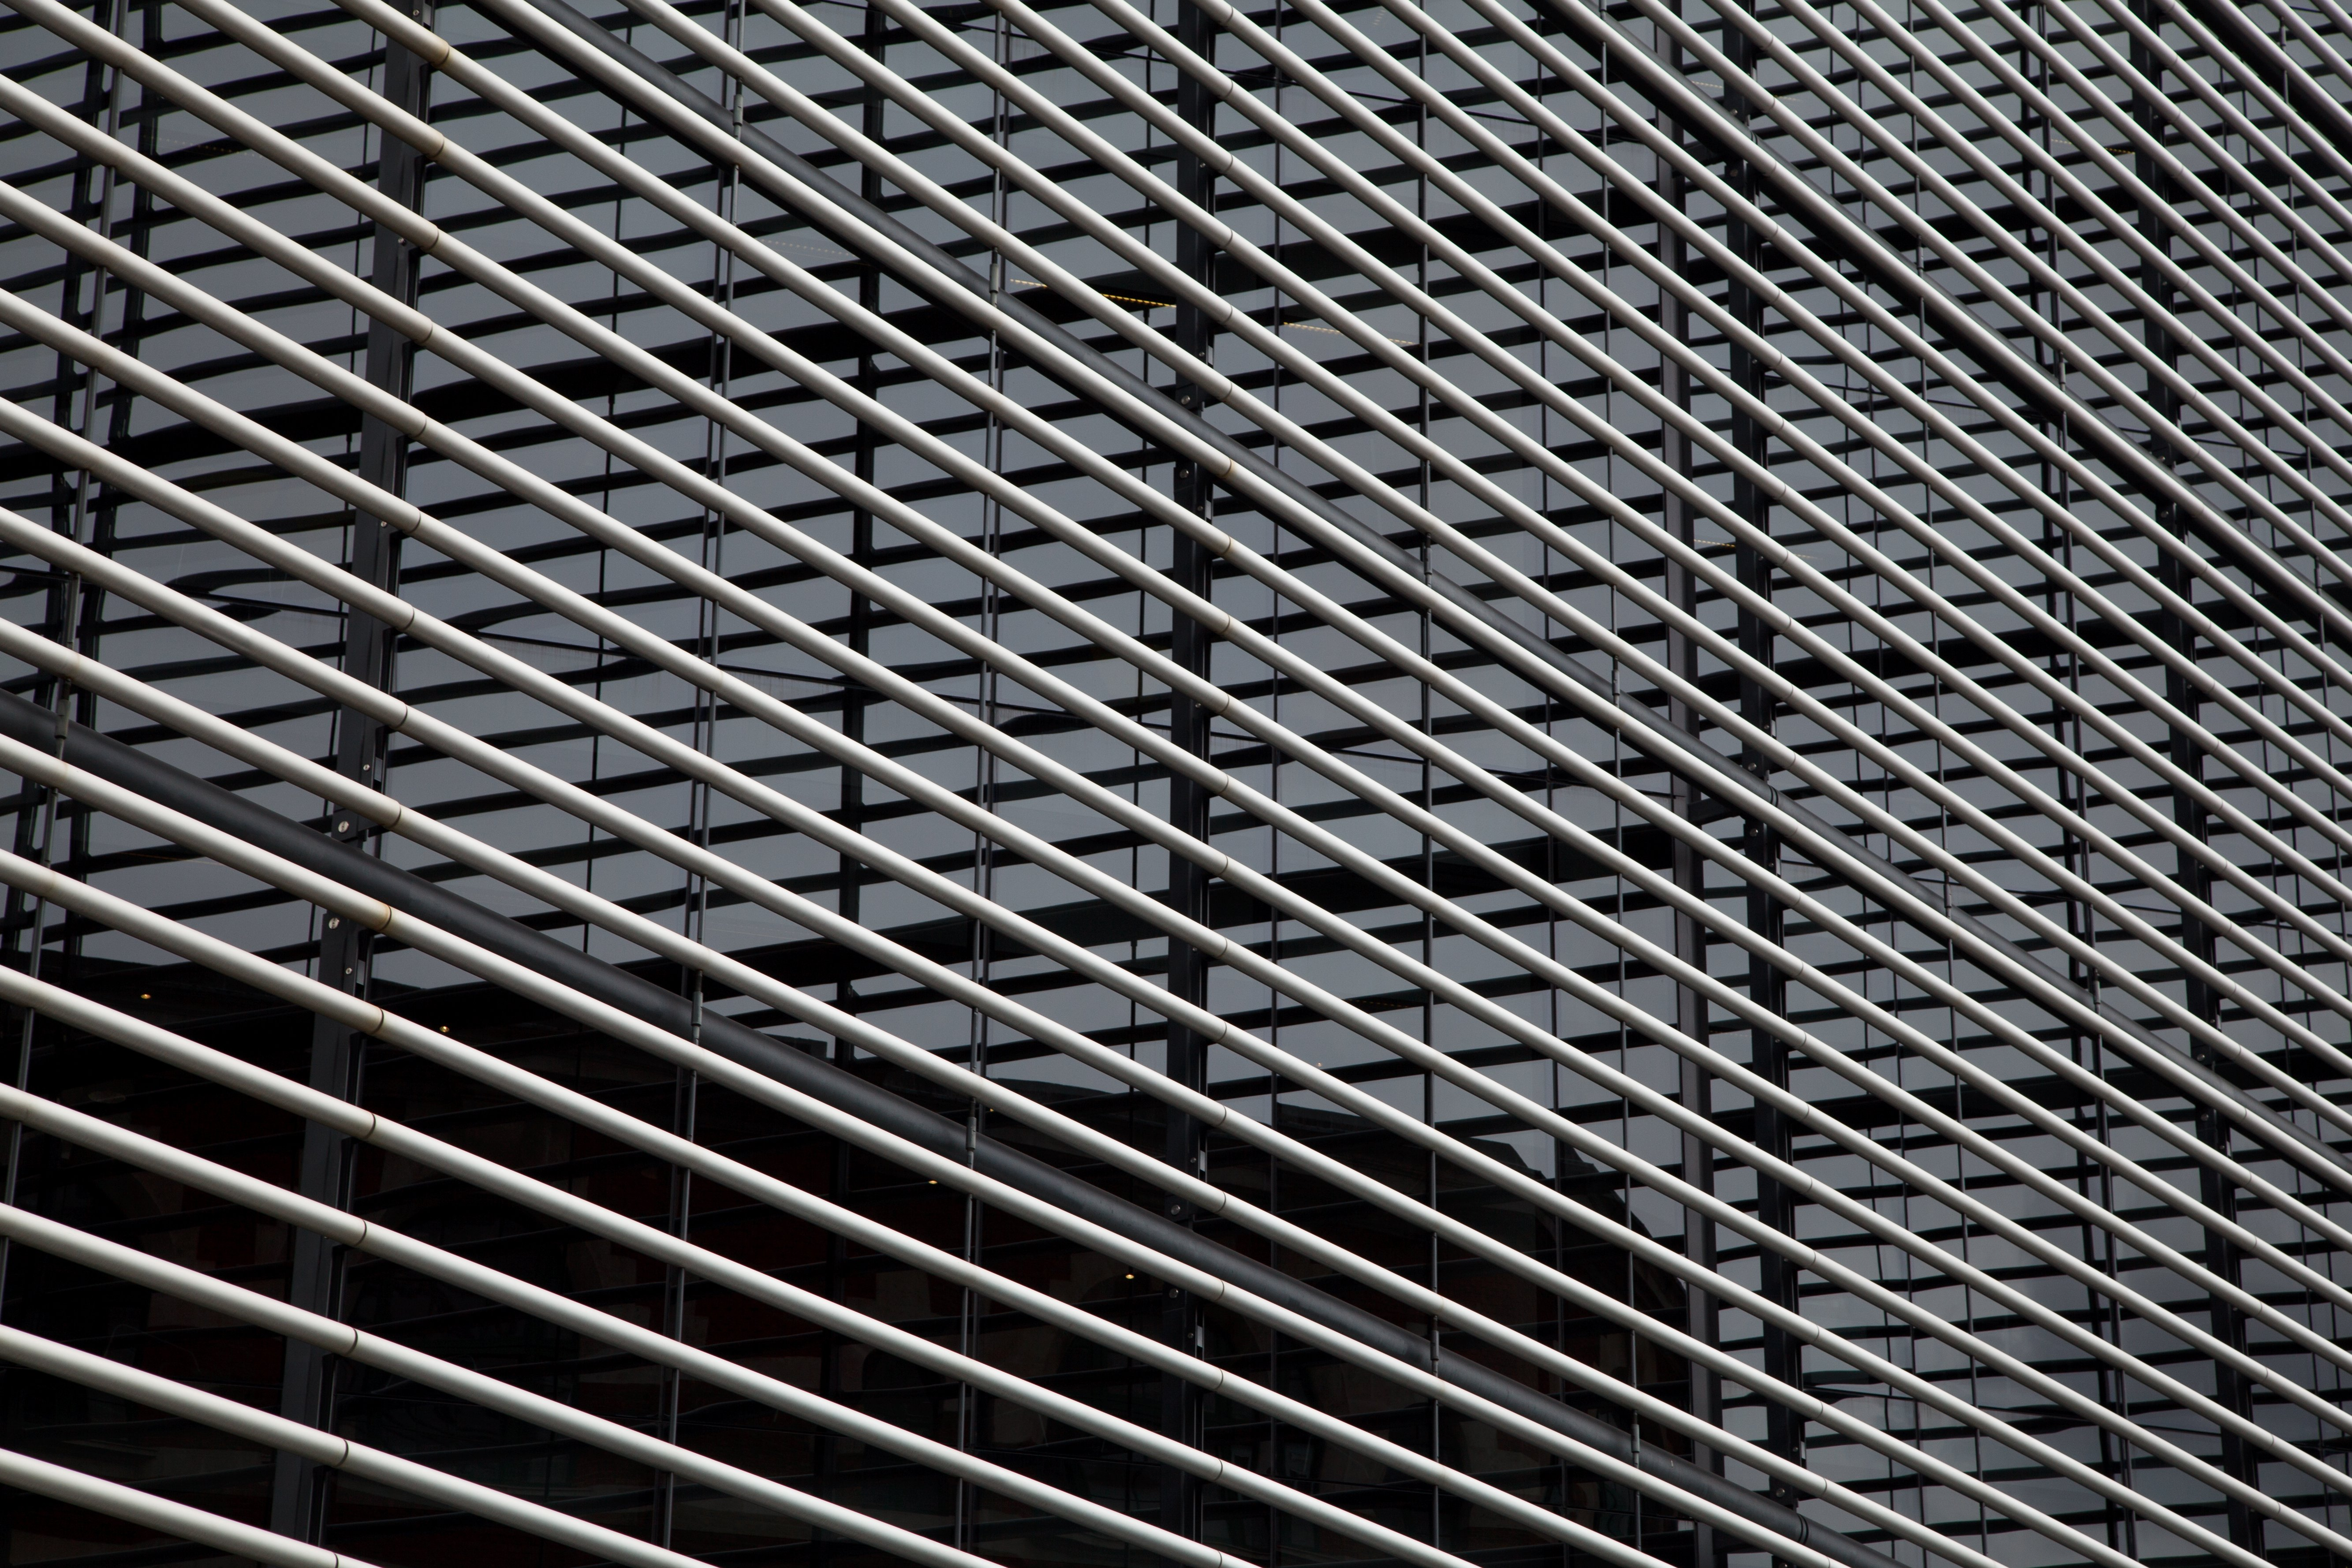 abstract_architecture_192440